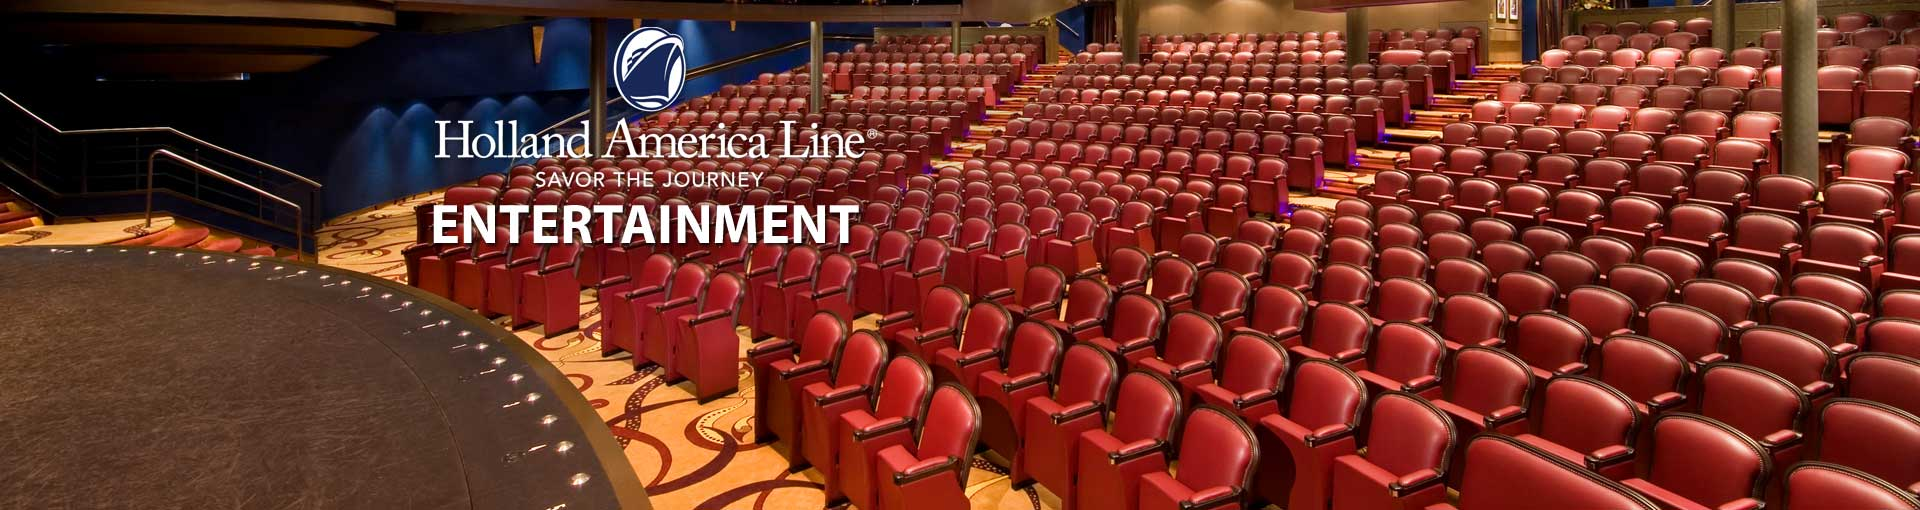 Holland America Line Entertainment